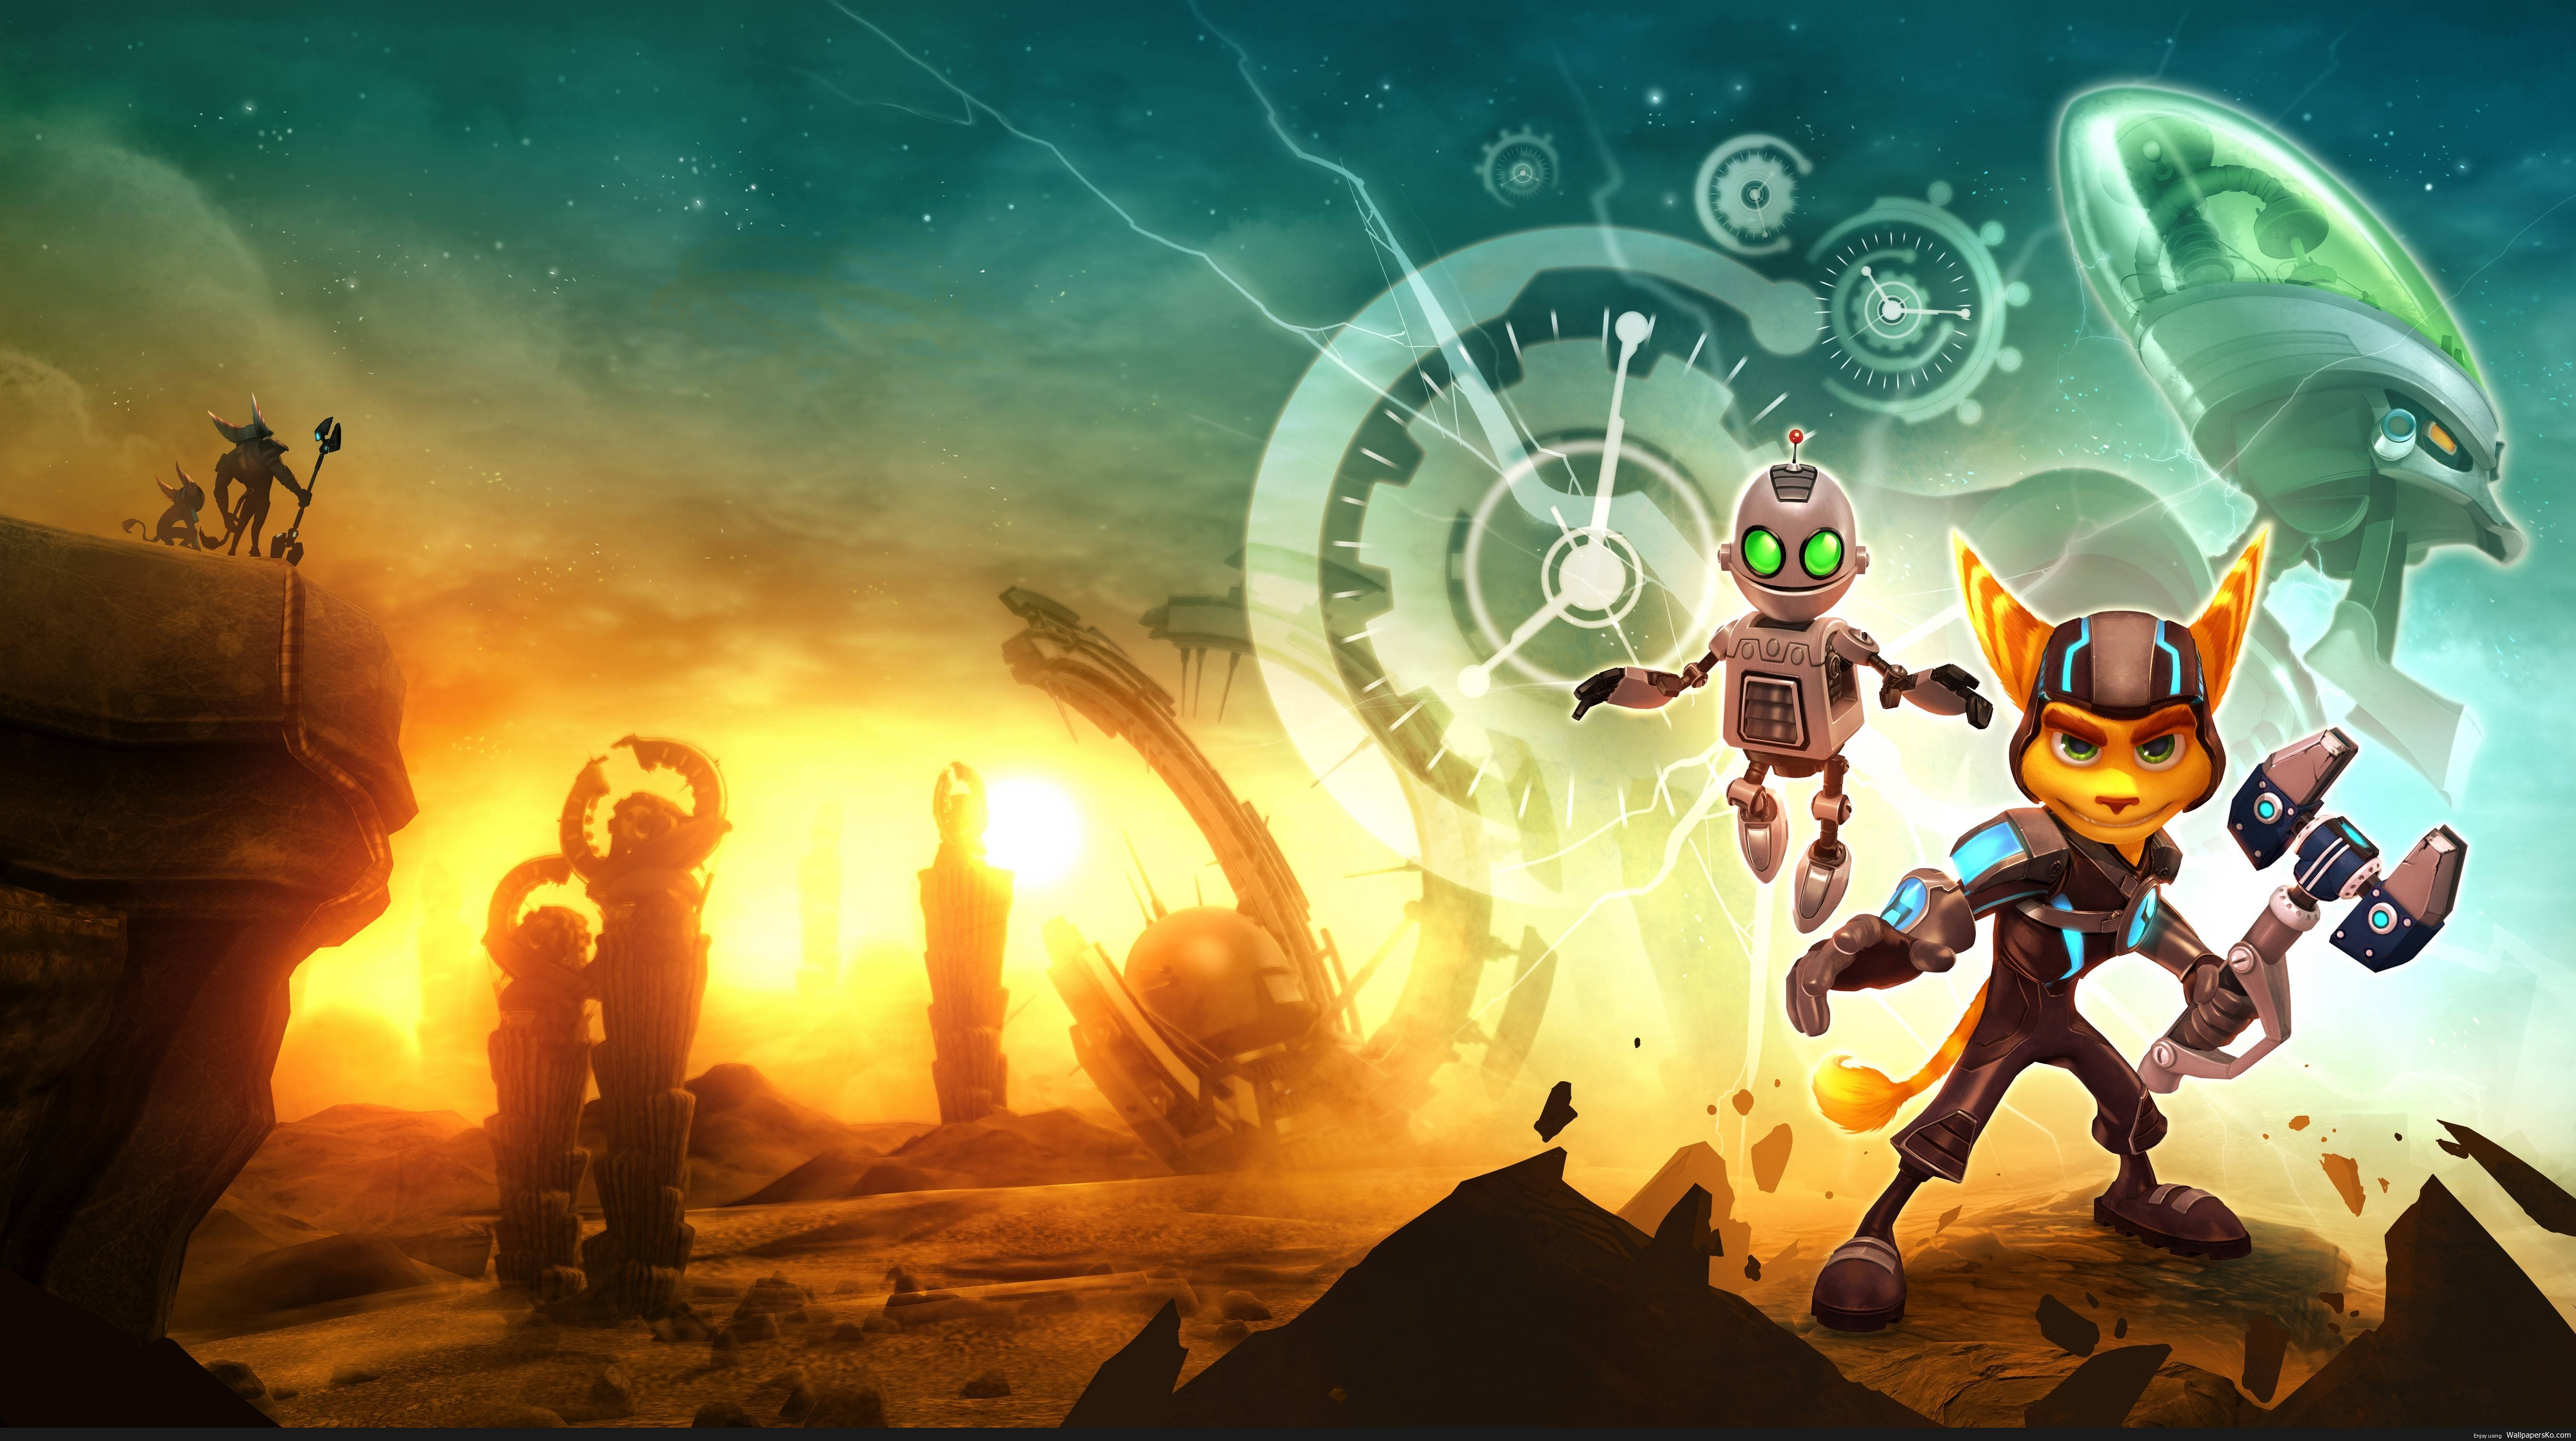 ratchet and clank hd wallpaper | hd wallpapers download